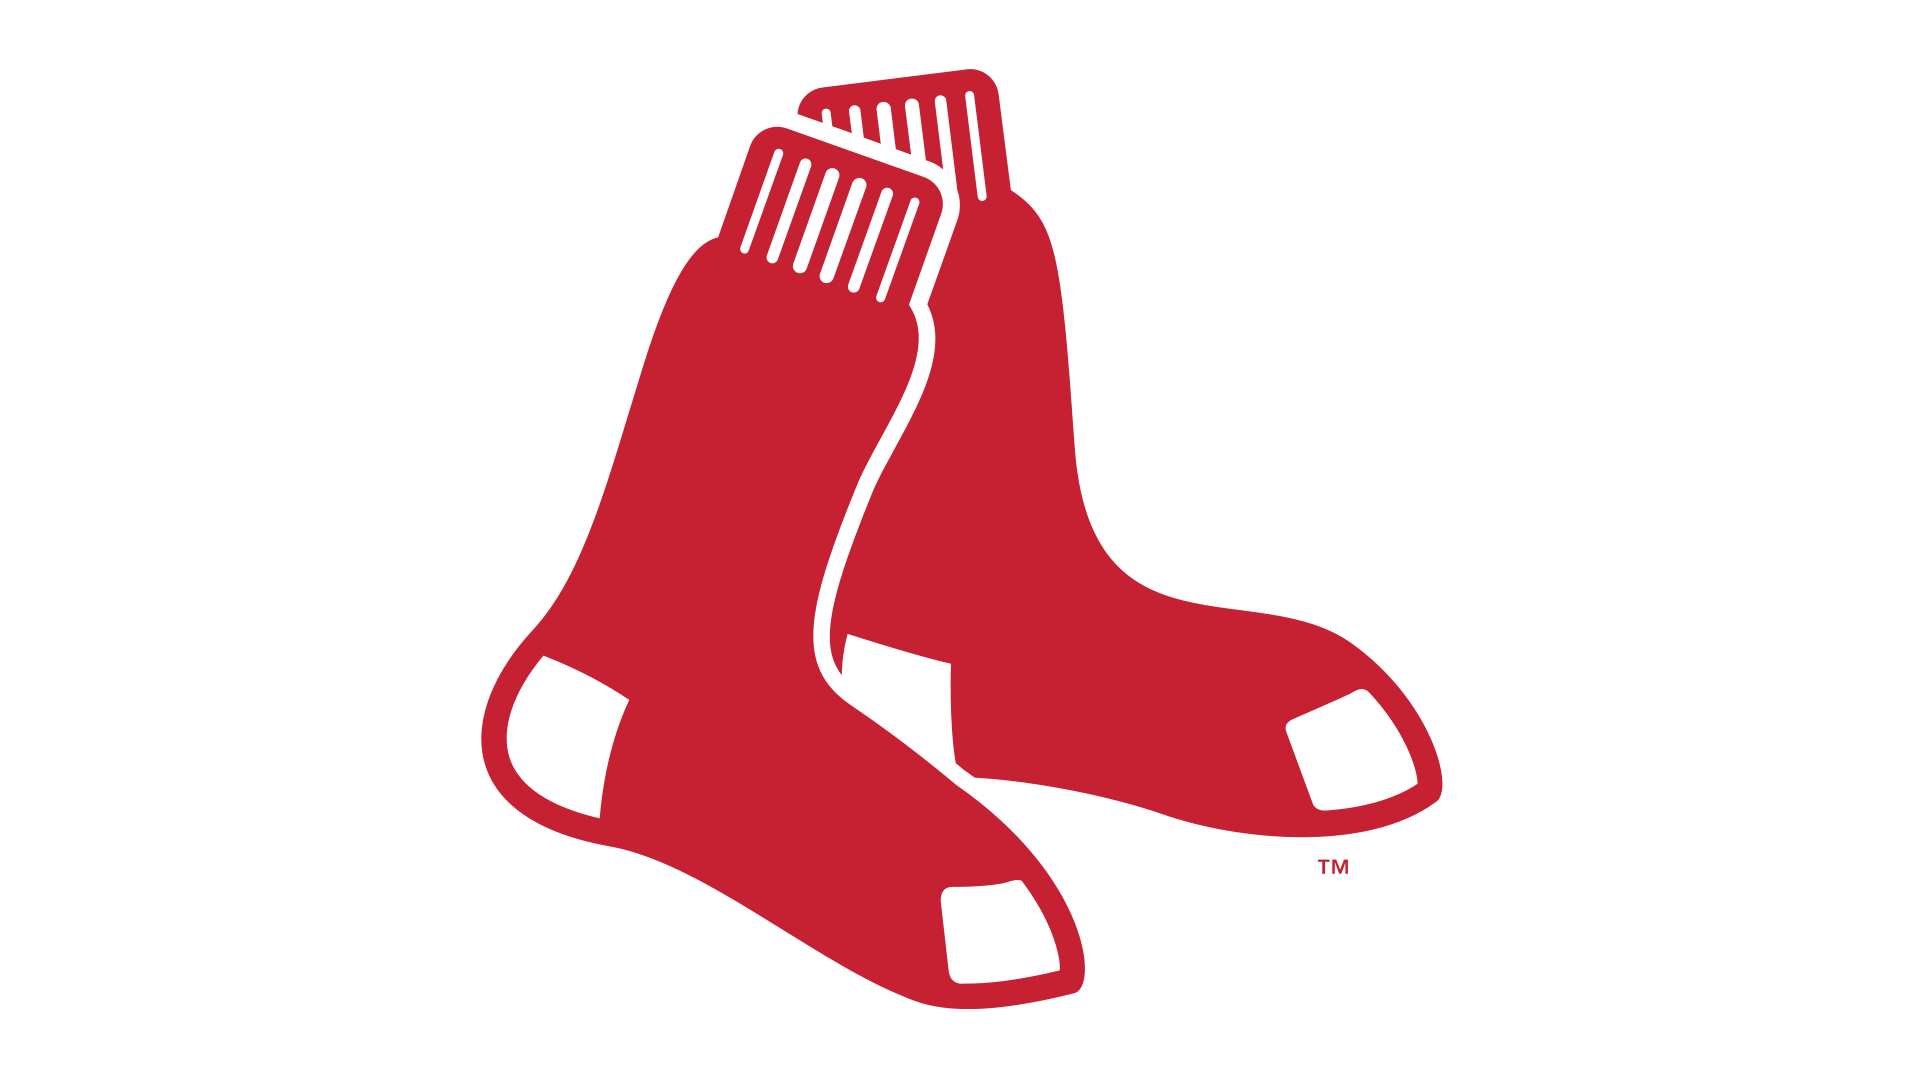 boston red sox logo transparent background #40814